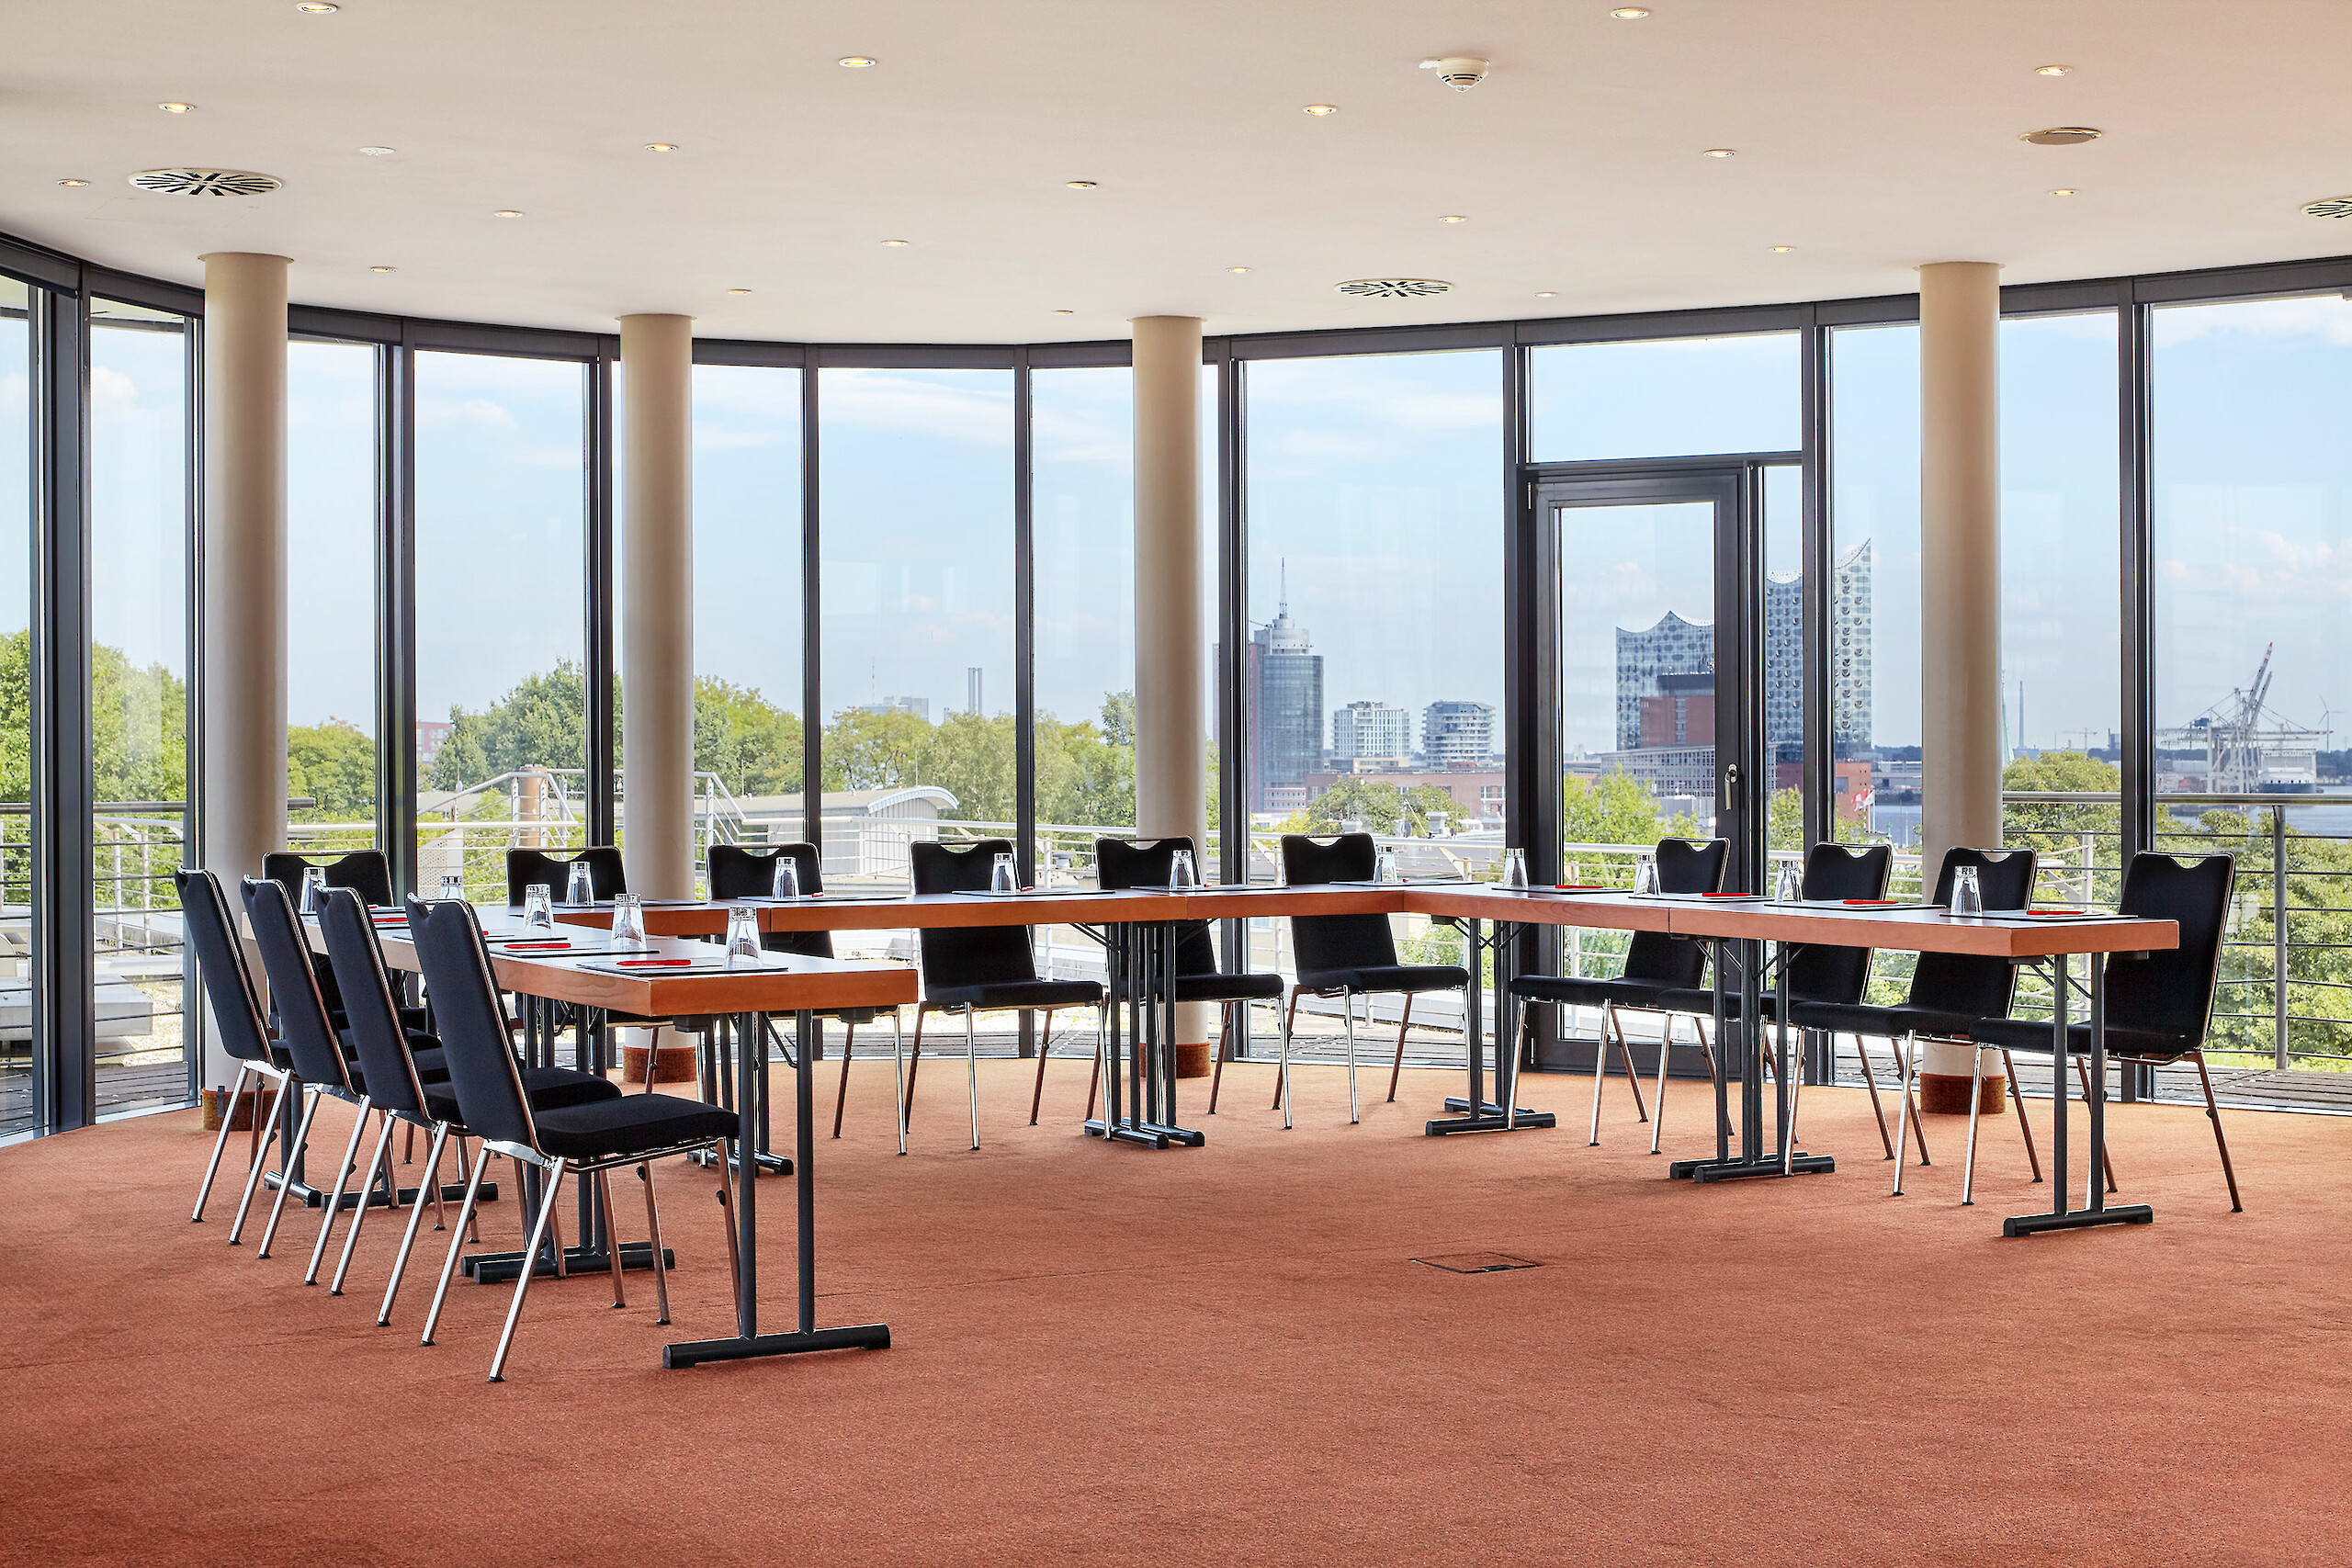 A prepared meeting room with a view of the Elbphilharmonie